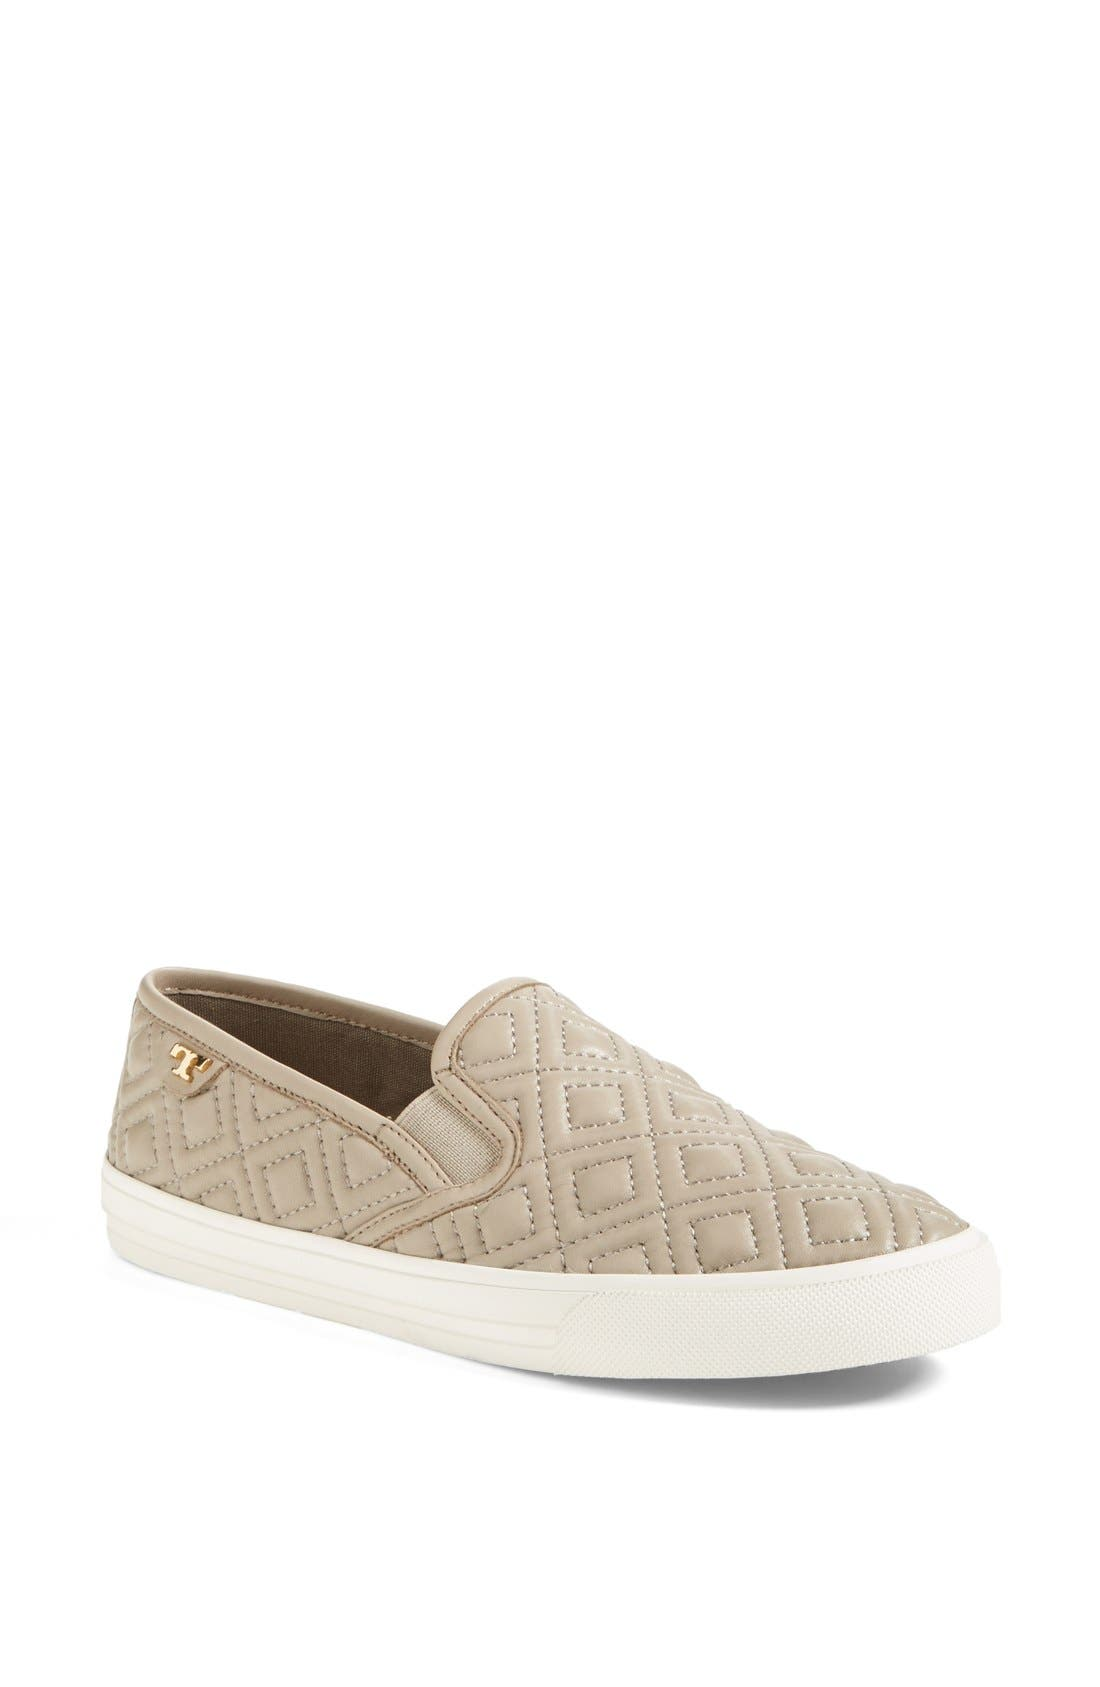 Alternate Image 1 Selected - Tory Burch 'Jesse' Quilted Leather Sneaker